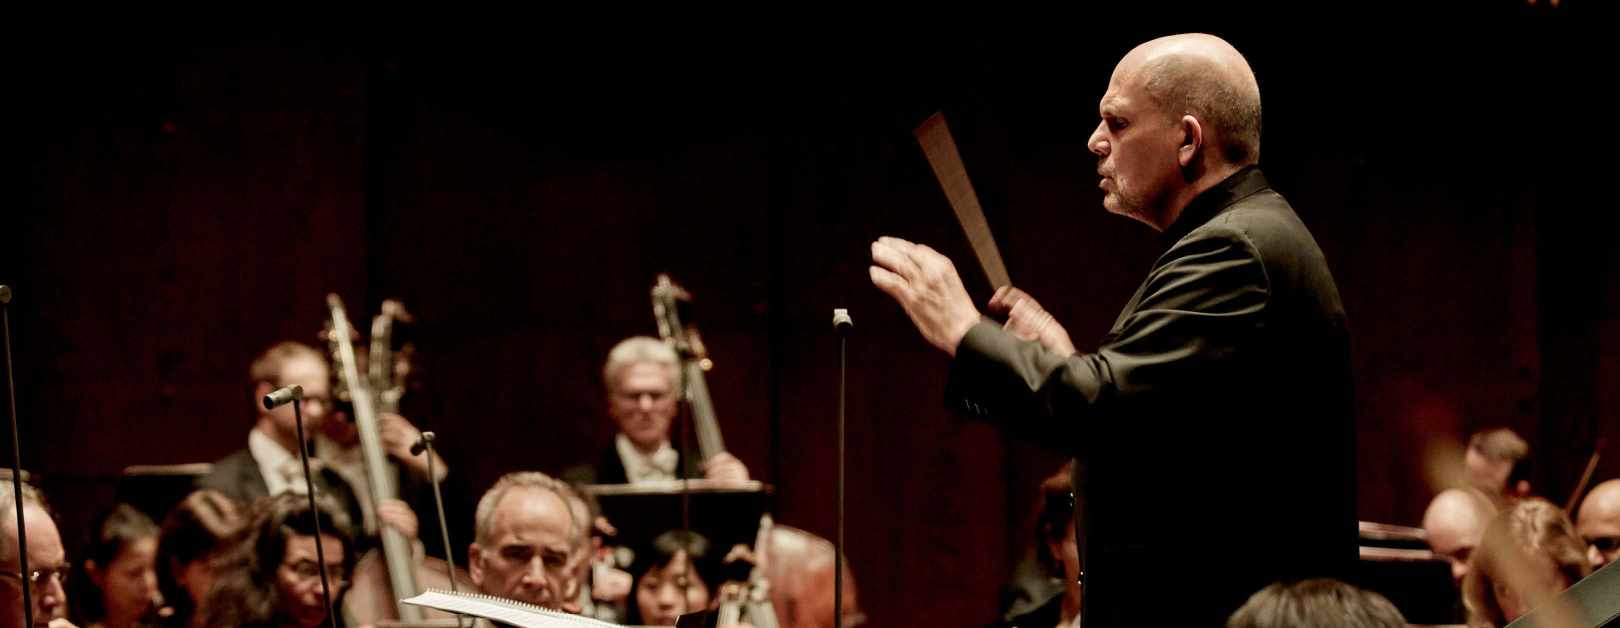 Jaap van Zweden Conducts The Rite of Spring in Shanghai